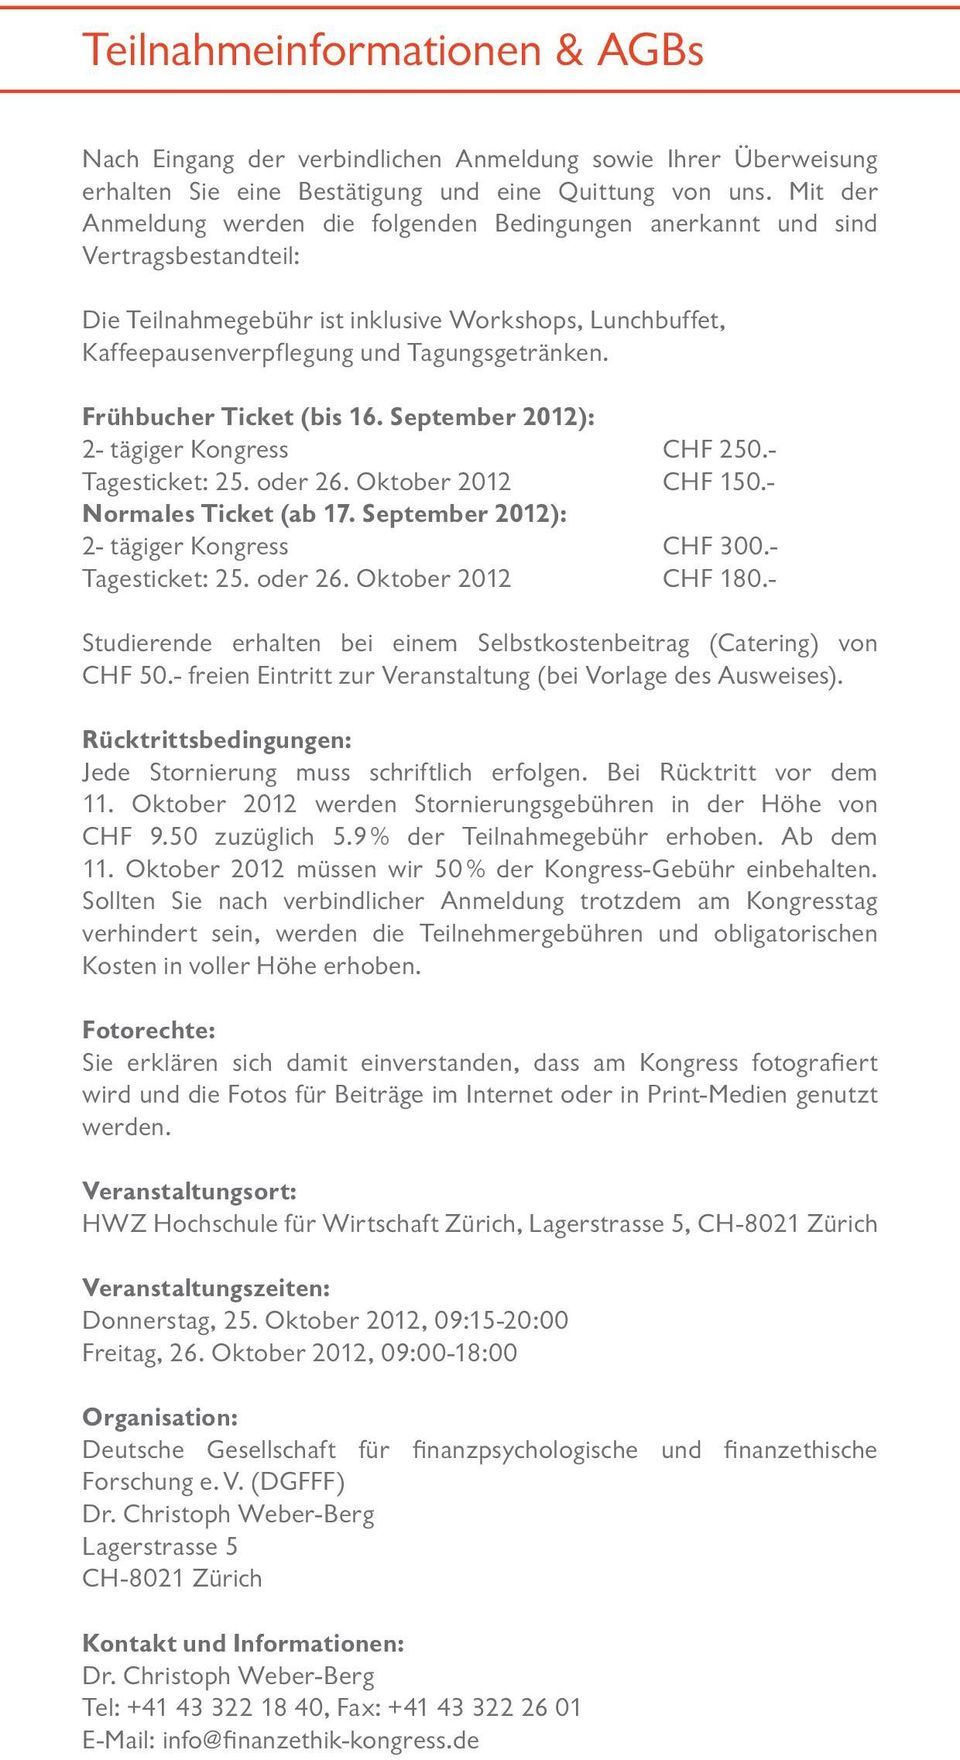 Frühbucher Ticket (bis 16. September 2012): 2- tägiger Kongress CHF 250.- Tagesticket: 25. oder 26. Oktober 2012 CHF 150.- Normales Ticket (ab 17. September 2012): 2- tägiger Kongress CHF 300.